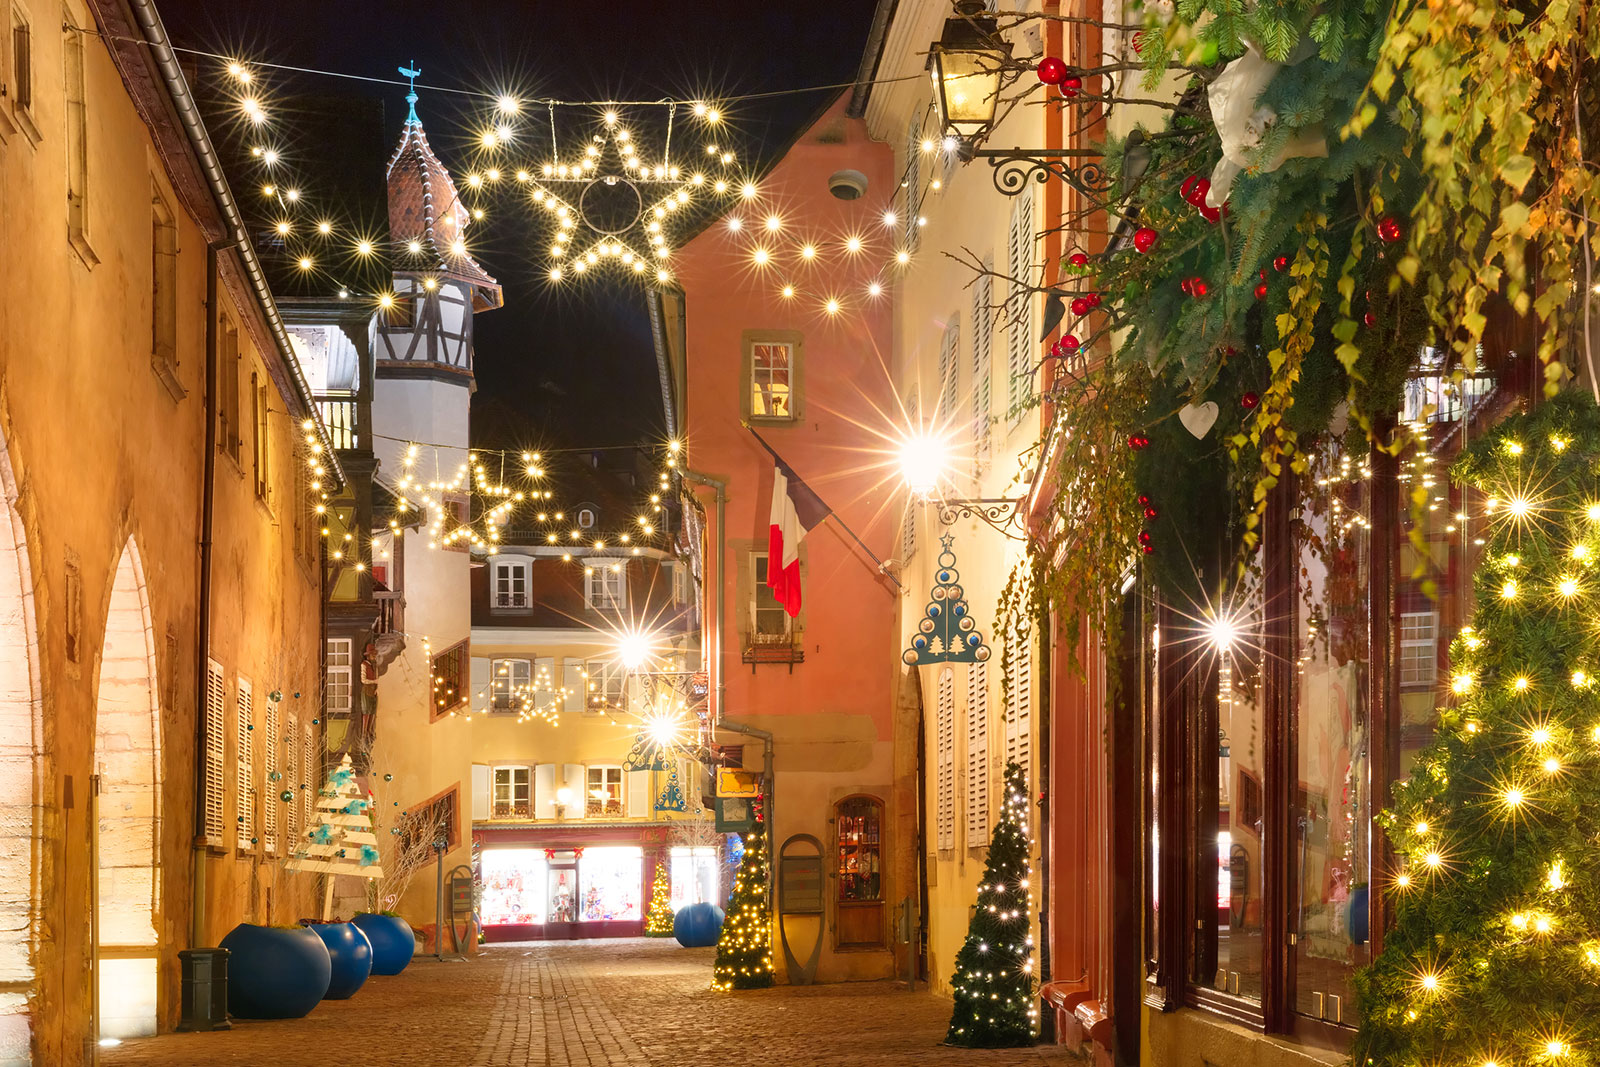 10 of the most amazing Christmas traditions and legends